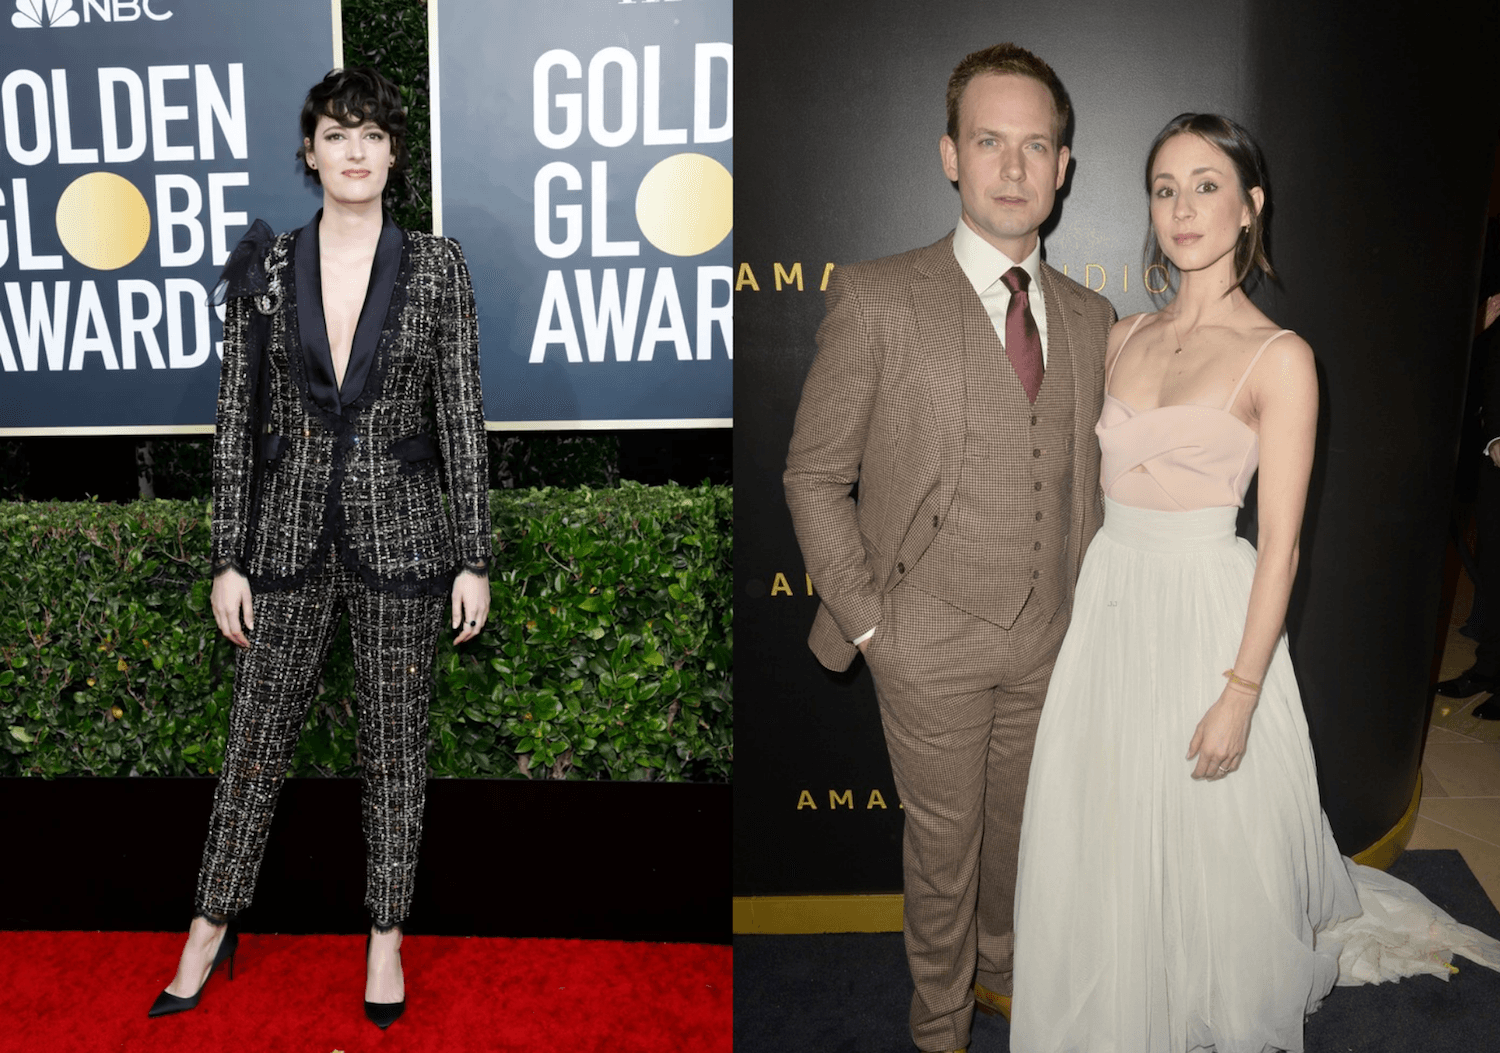 Our Favorite Trend From The Golden Globes Was Sustainability